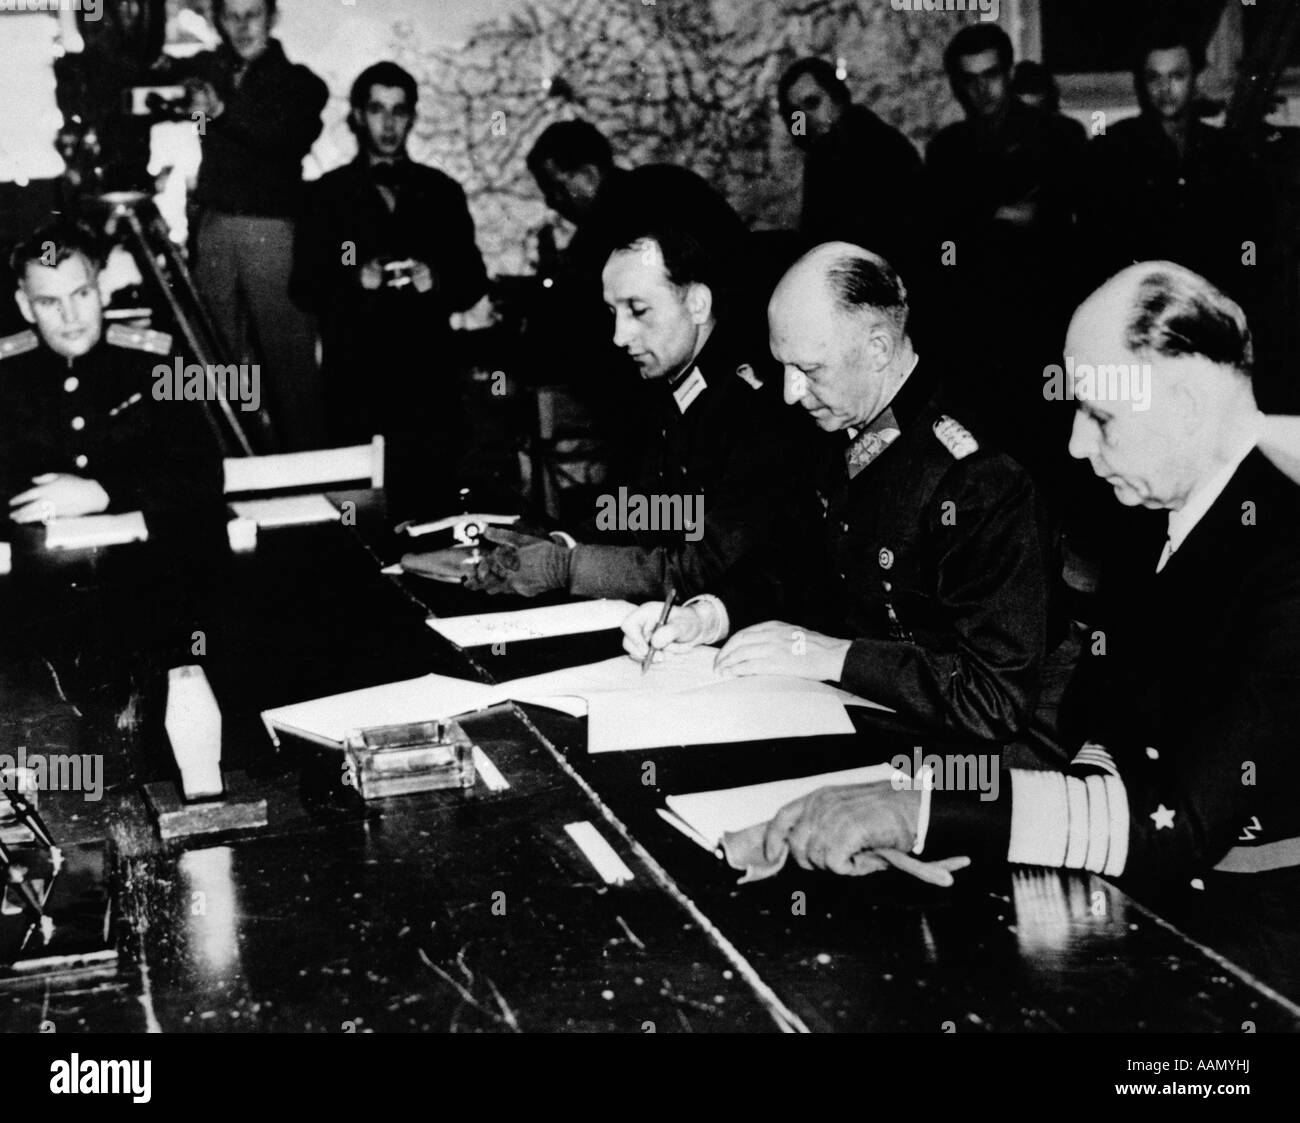 1940s GERMAN GENERAL JODL SIGNS SIGNING SURRENDER PAPERS MAY 7 1945 RHEIMS FRANCE - Stock Image